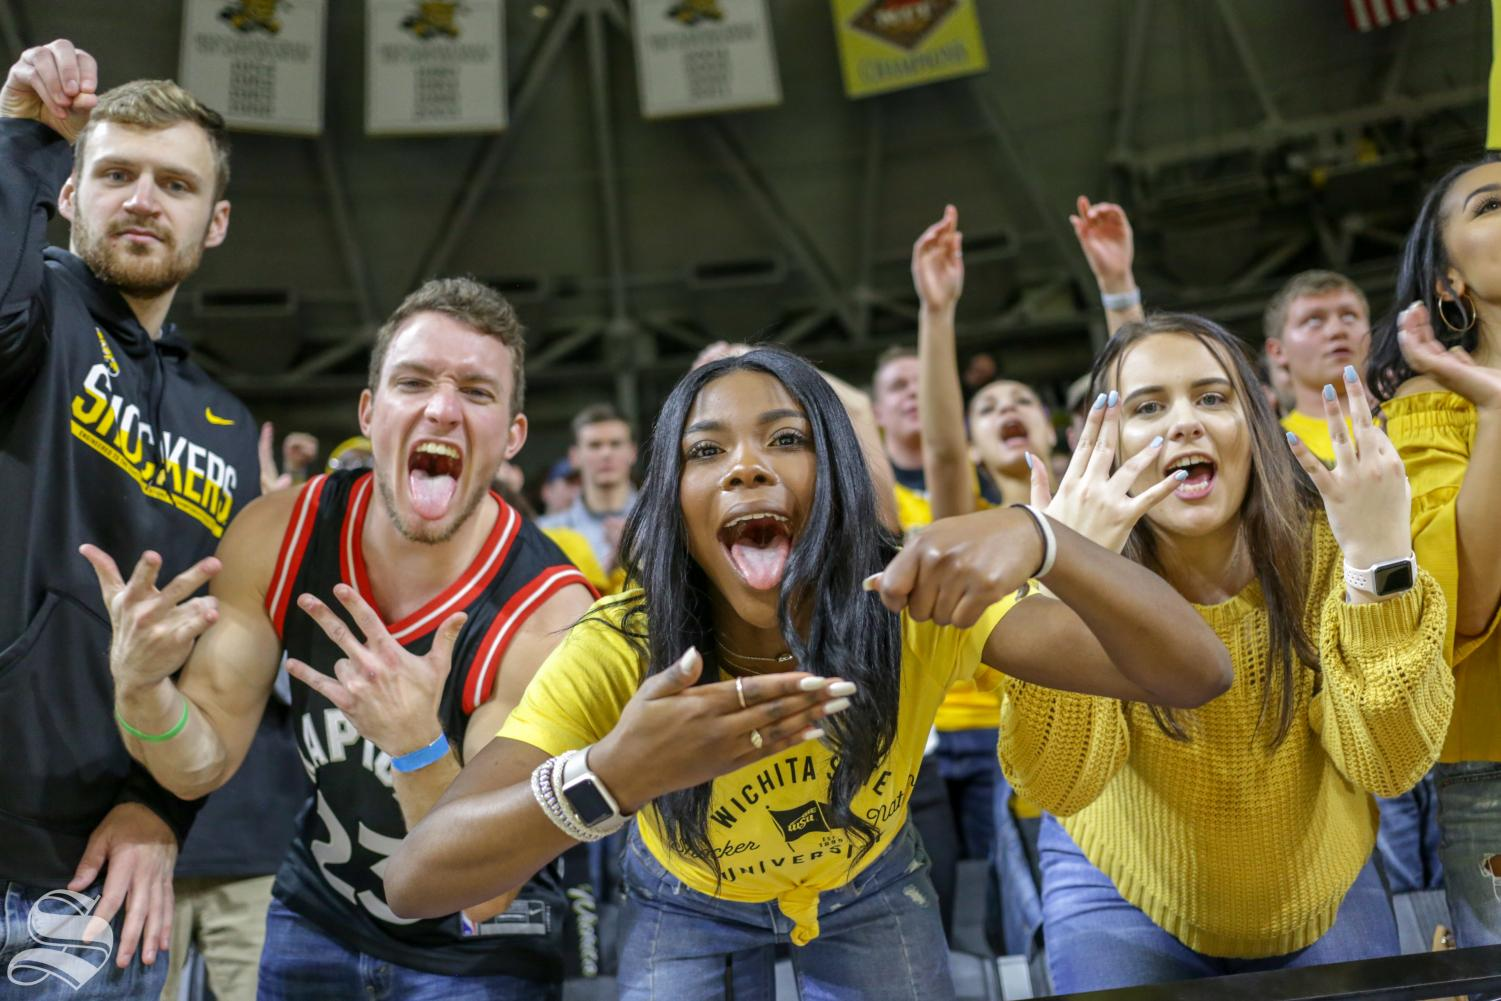 Wichita State fans celebrate a step-back jumper made by WSU senior Samajae Haynes-Jones with 22 seconds left in the game held on Jan. 16 at Charles Koch Arena. The two-point jumper by Haynes-Jones secured the victory against Central Florida.